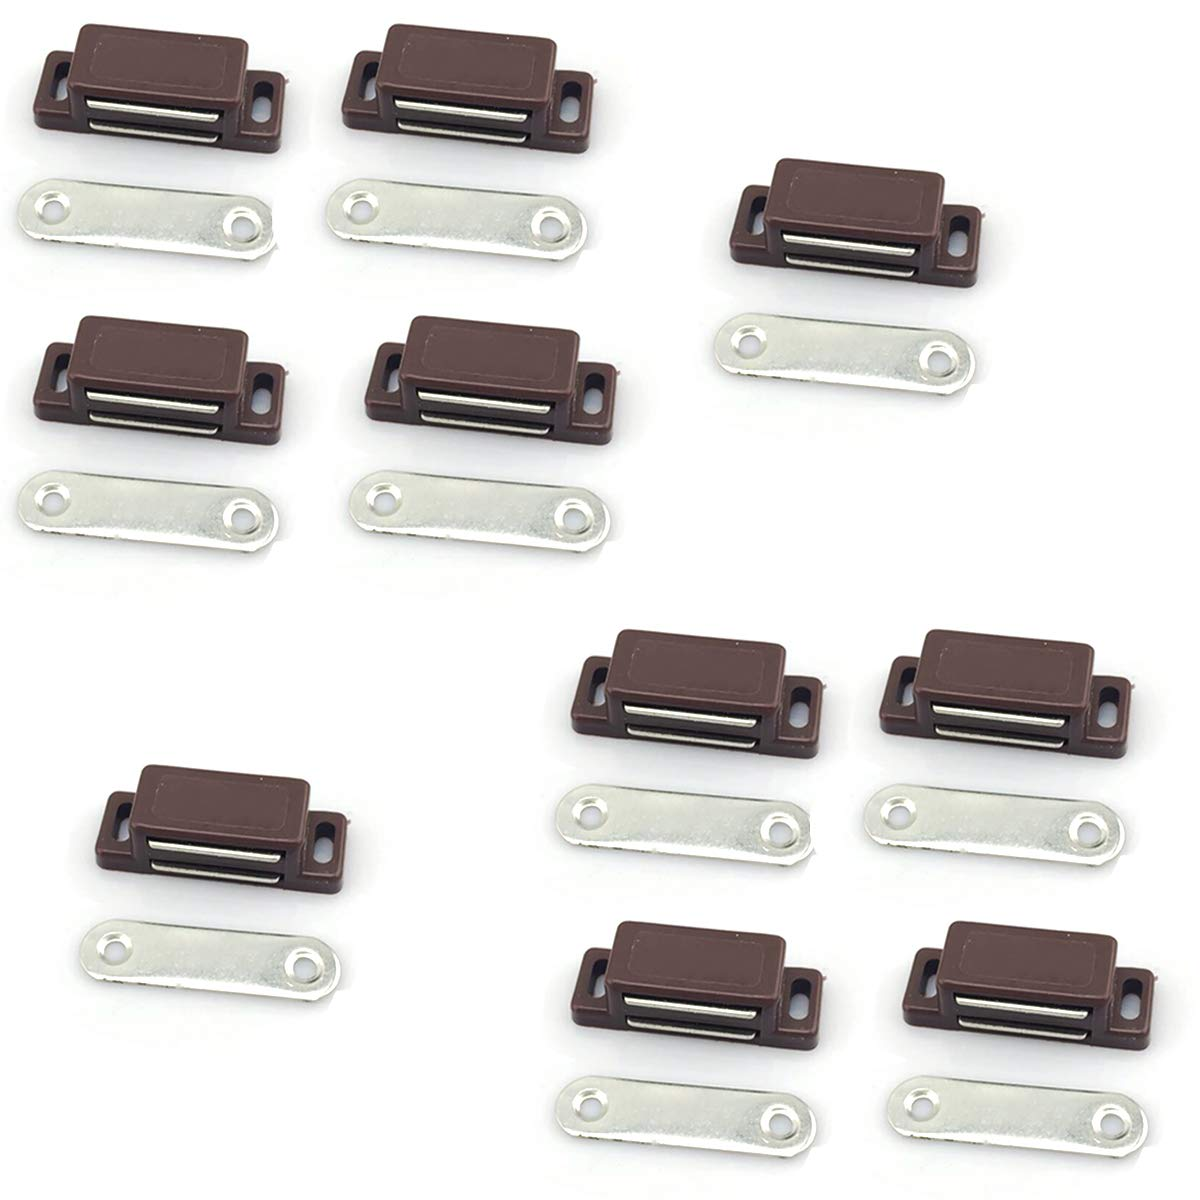 Rannb Magnetic Cabinet Catch Latch with Strike for Cupboard Cabinet Drawer Door-Pack of 10 (Brown)